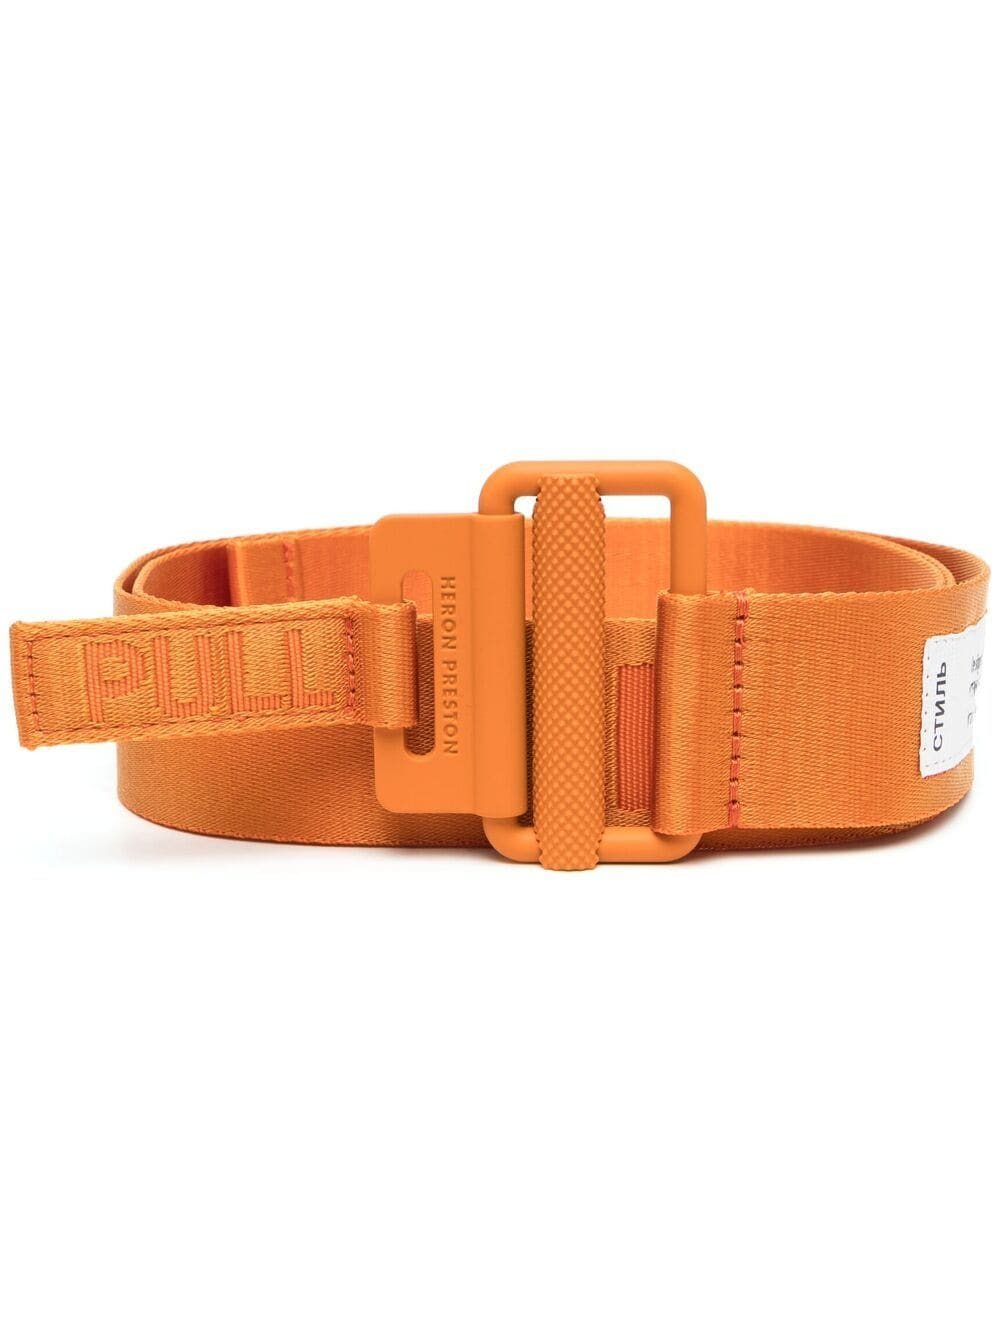 HERON PRESTON WOMEN 4CM CLASSIC BUCKLE TAPE BELT